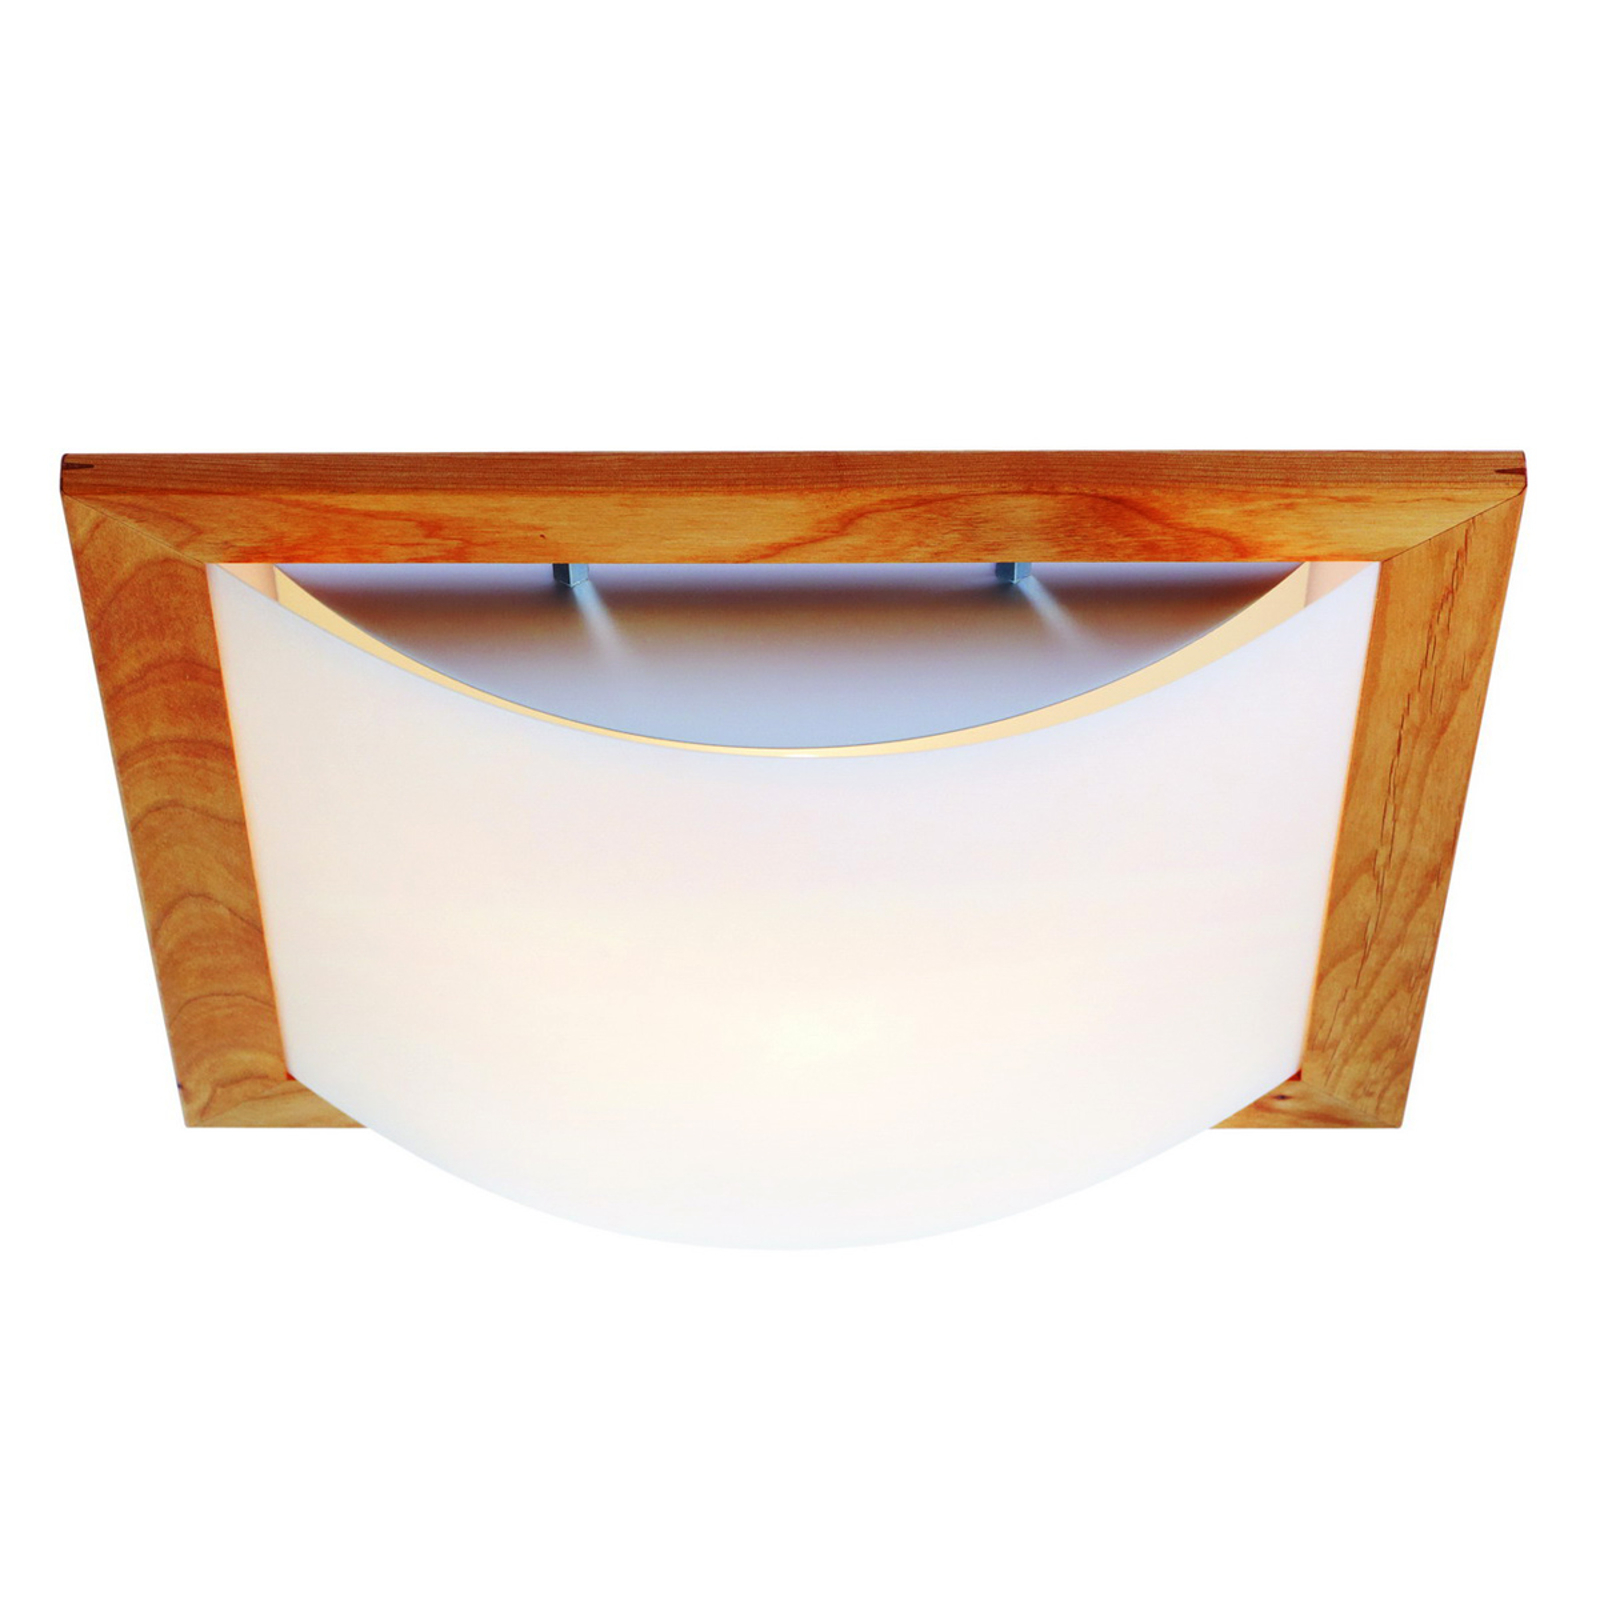 Stella ceiling light with wood and lunopal_2600214_1